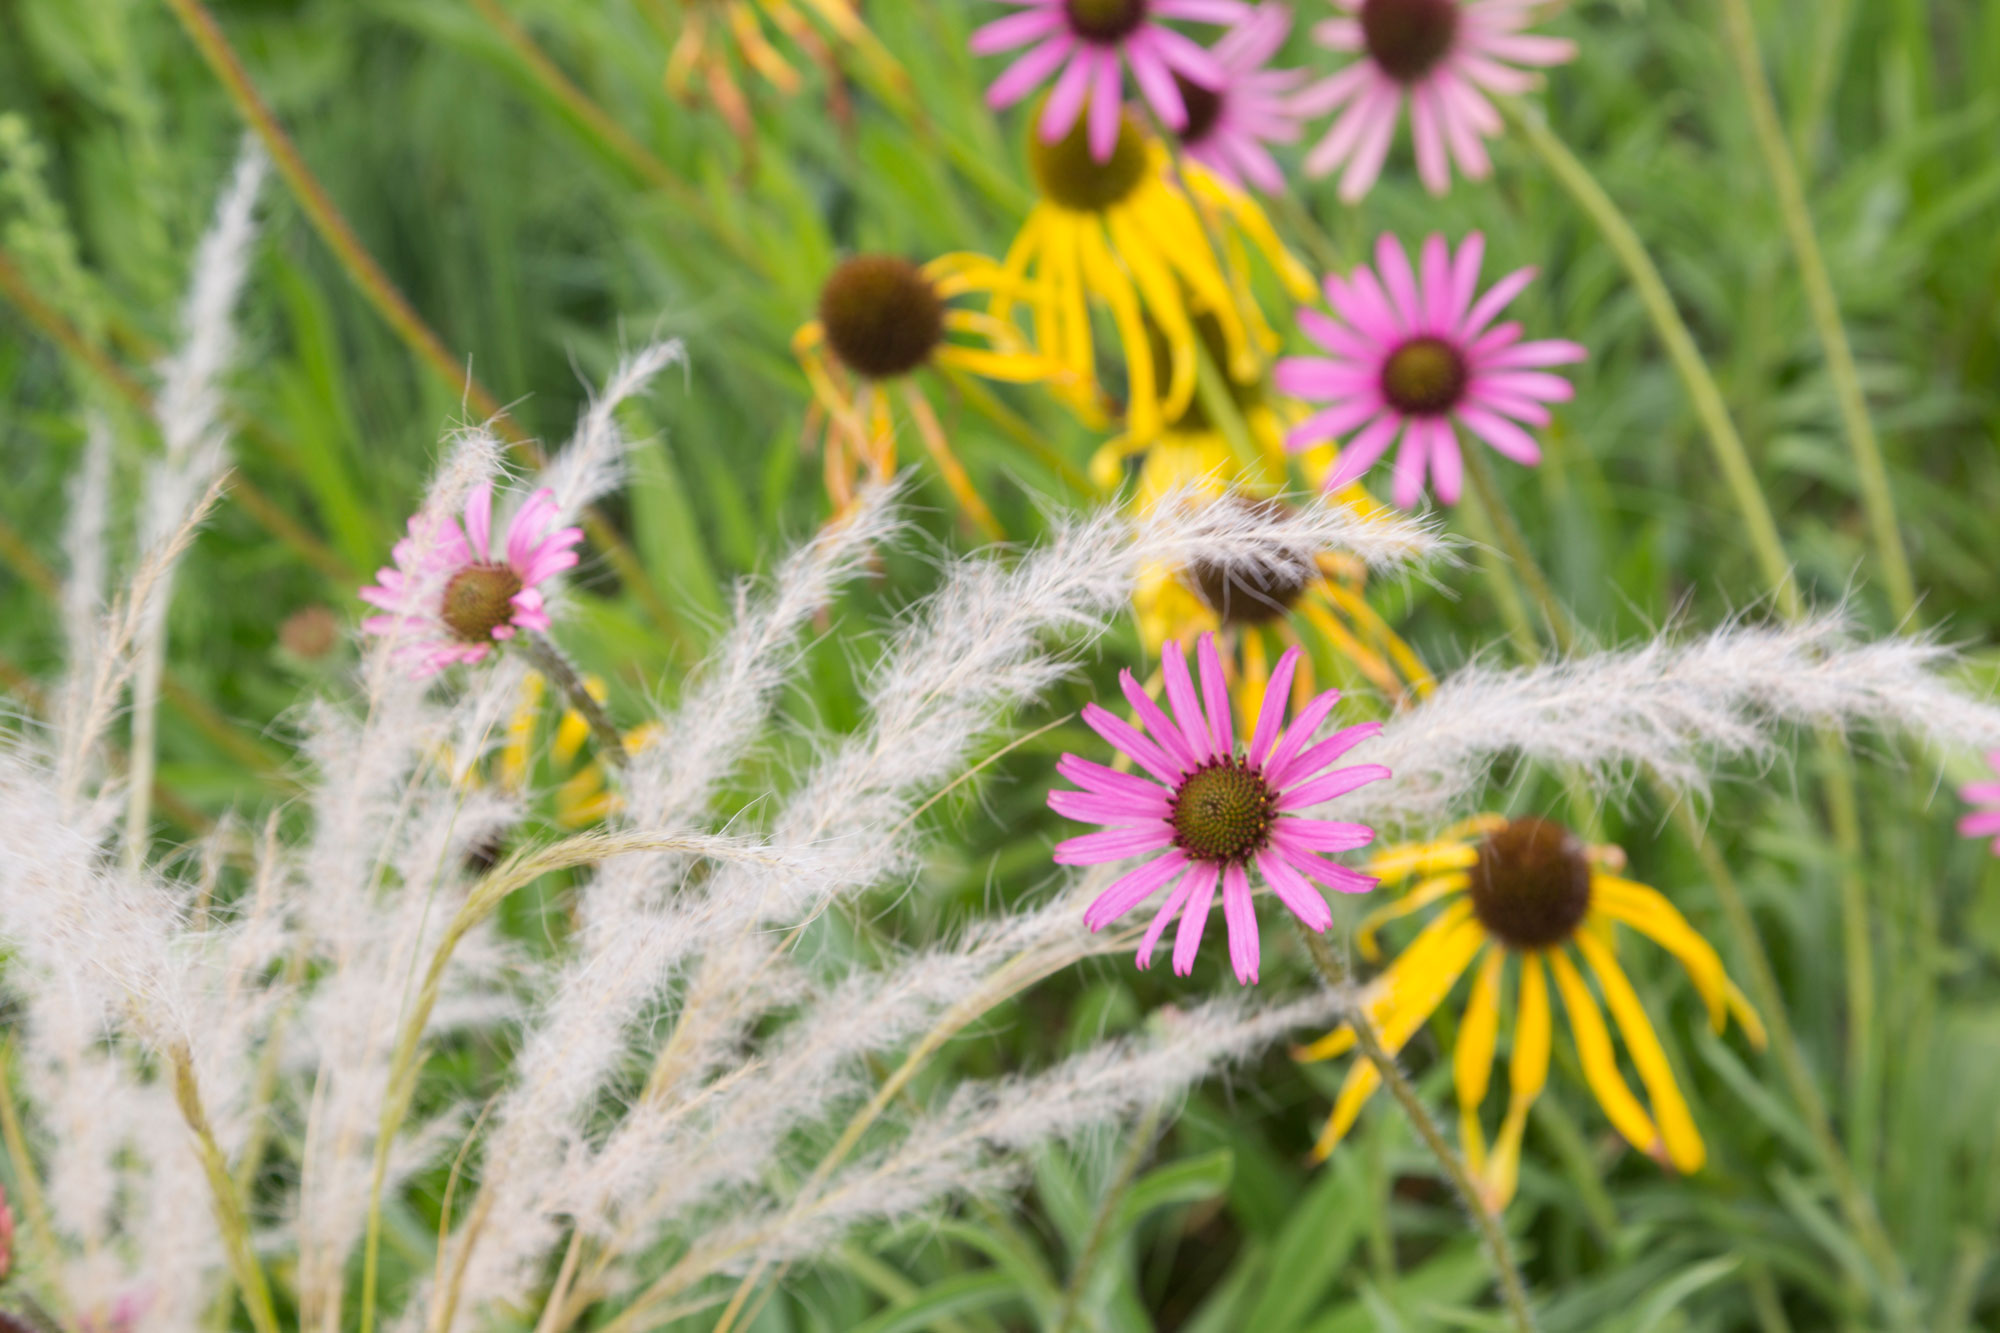 A close up of white grasses in a Garden, with some yellow and pink cone flowers behind it